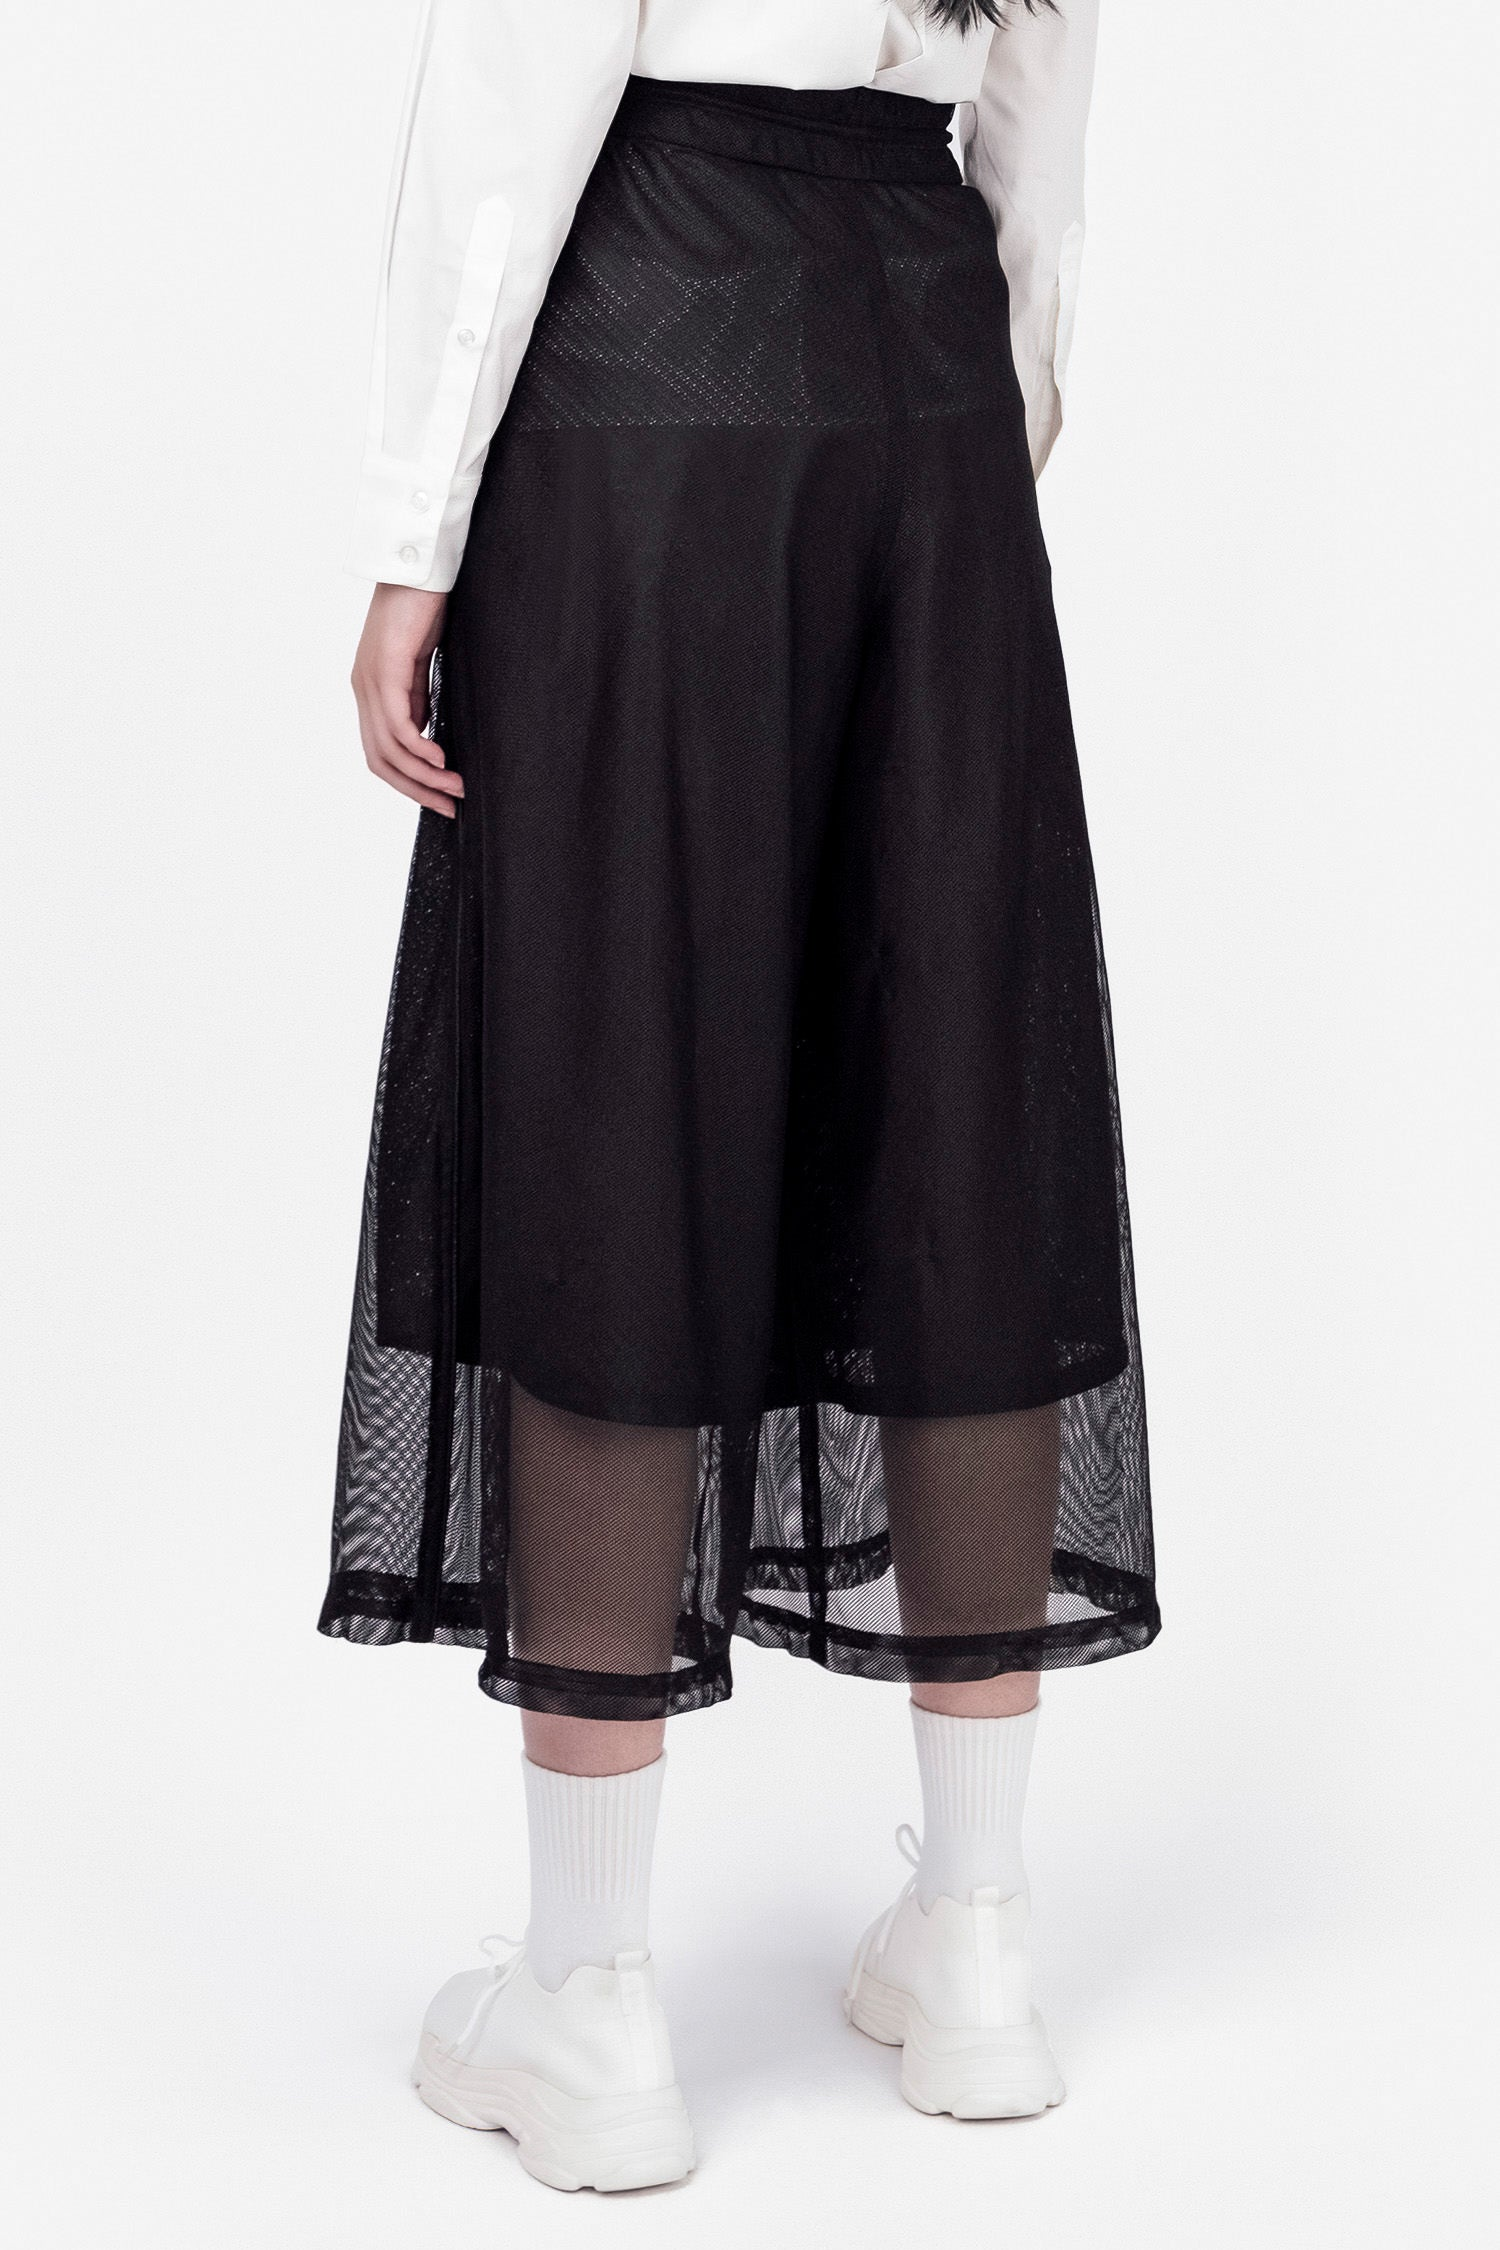 SEANNUNG - 雙層網寬管褲 Double Layer Meshed Wide-leg Trousers - Woman